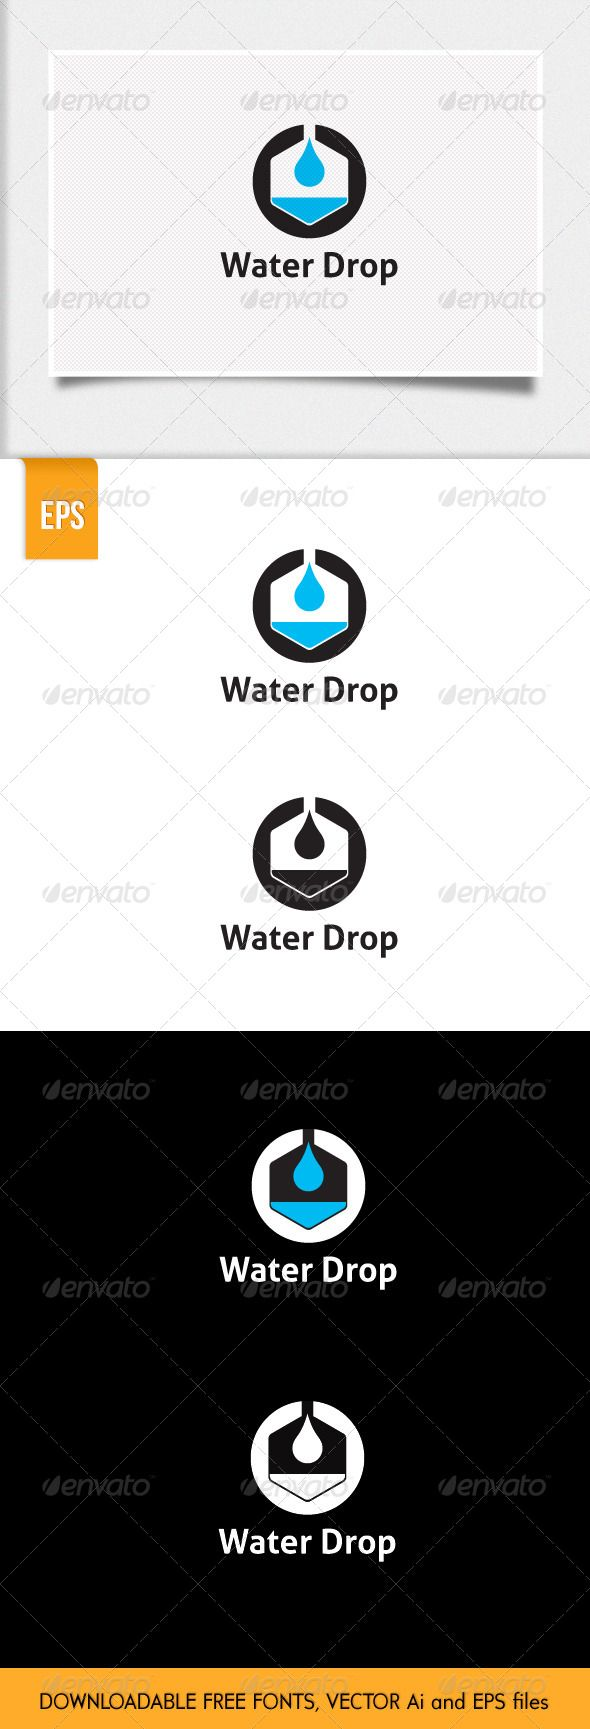 Water Drop Logo  #GraphicRiver         The logo is excellent for oil, water, pharmacy, chemical companies. Vector files, free fonts are used. Please download it here.  Aller Bold  .fontsquirrel /fonts/aller  File formats: EPS, Ai   Don't hesitate to contact me if you have any question.     Created: 15October13 GraphicsFilesIncluded: VectorEPS #AIIllustrator Layered: No MinimumAdobeCSVersion: CS Resolution: Resizable Tags: chemical #chemistry #corporate #drop #logo #oil #pharmacy #water